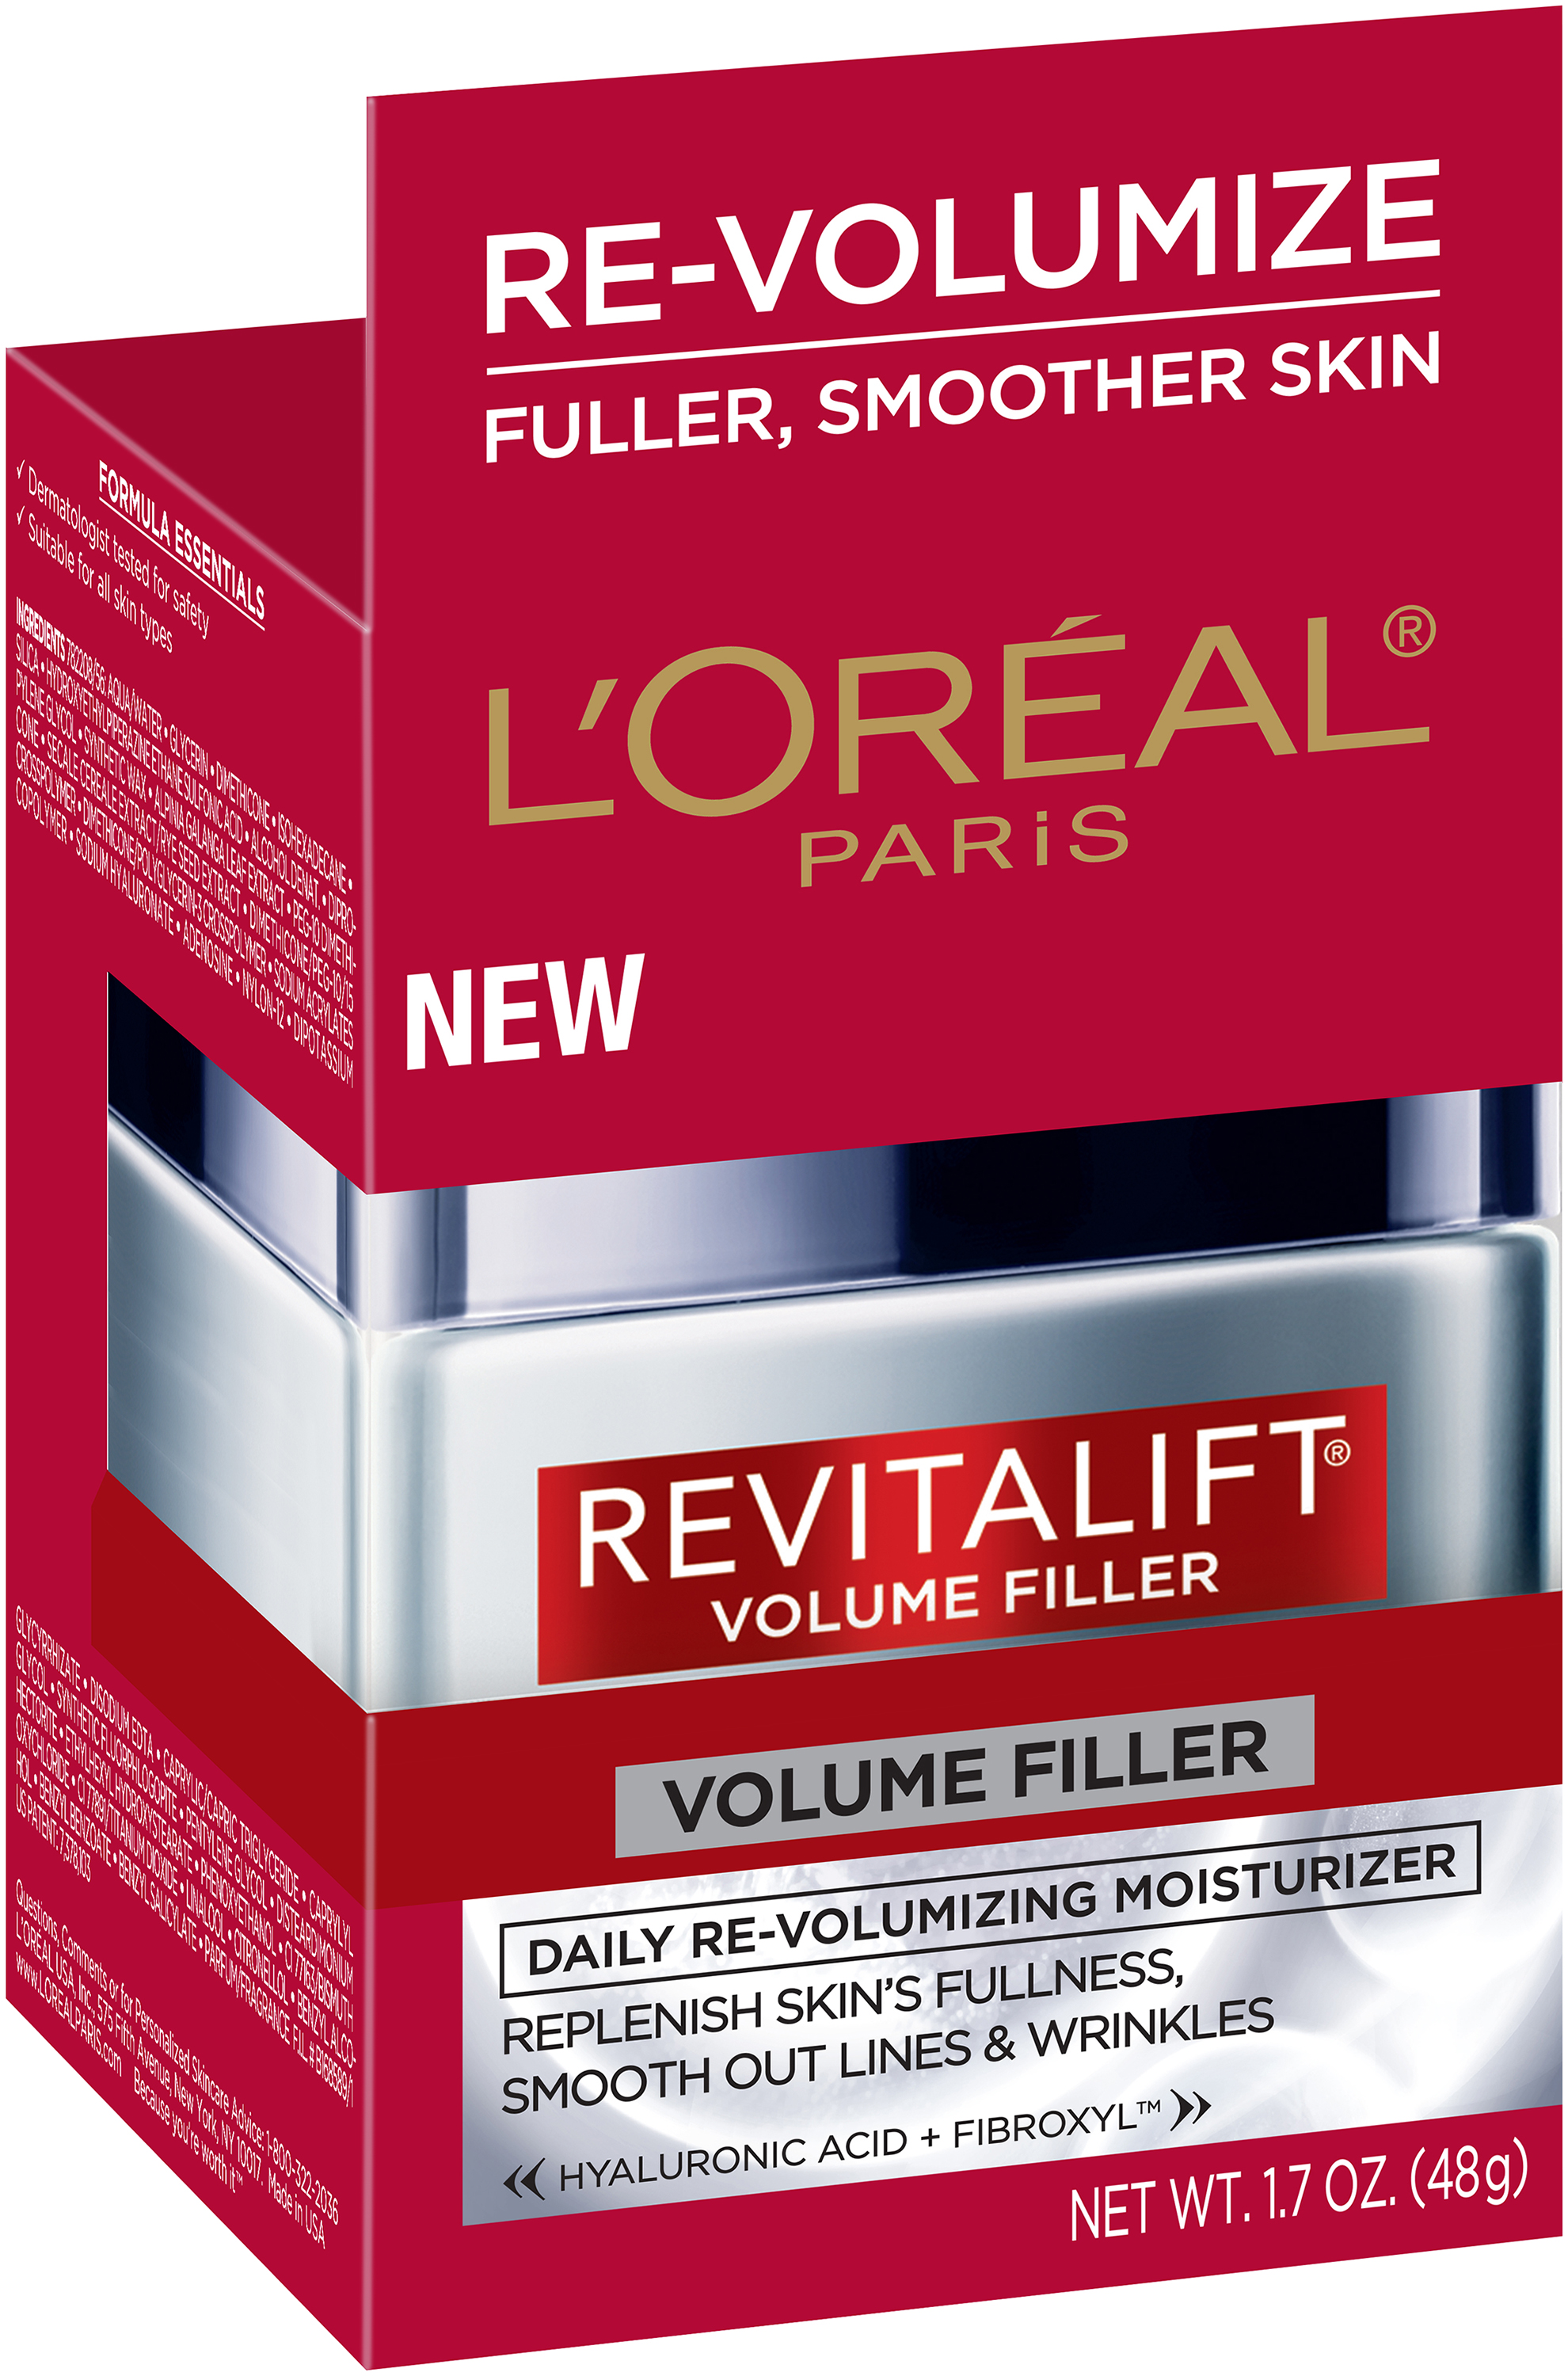 L'Oréal® Paris Revitalift® Daily Re-Volumizing Moisturizer for All Skin Types 1.7 oz. Jar